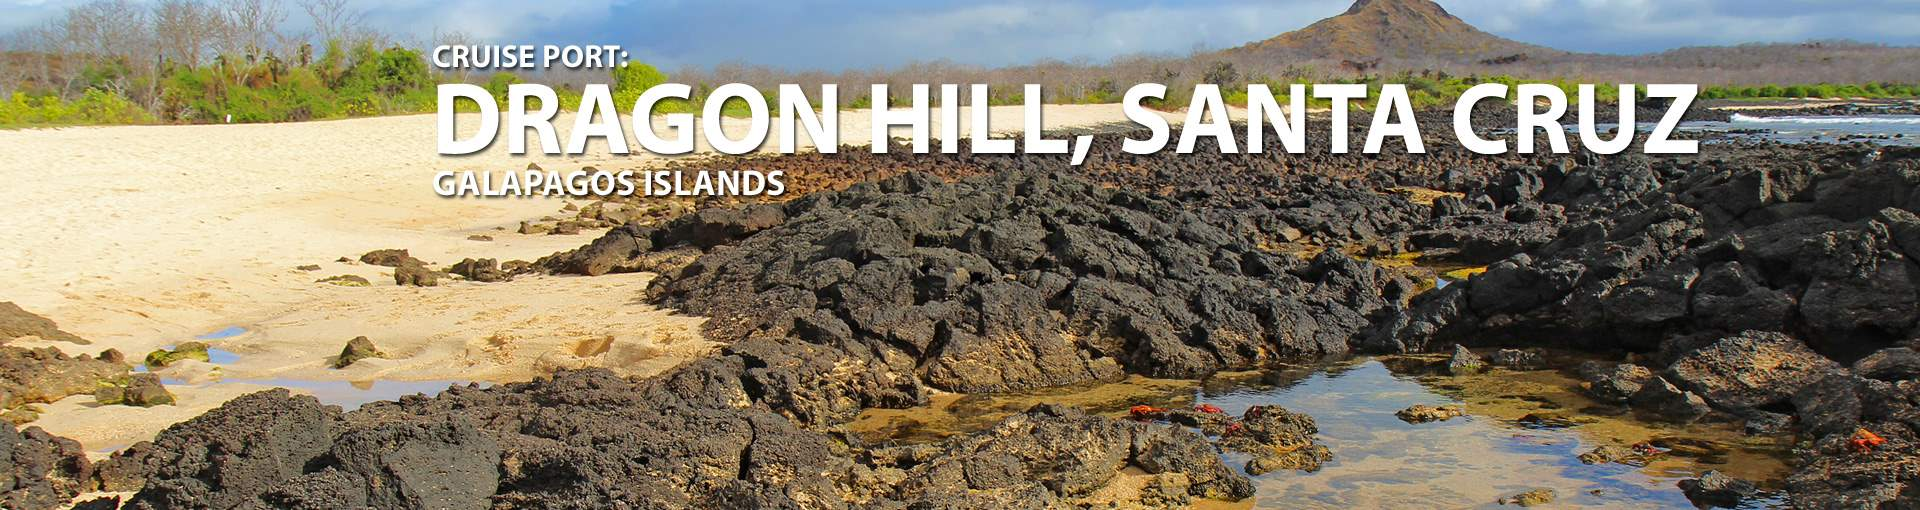 Cruise to Dragon Hill (Santa Cruz), Galapagos